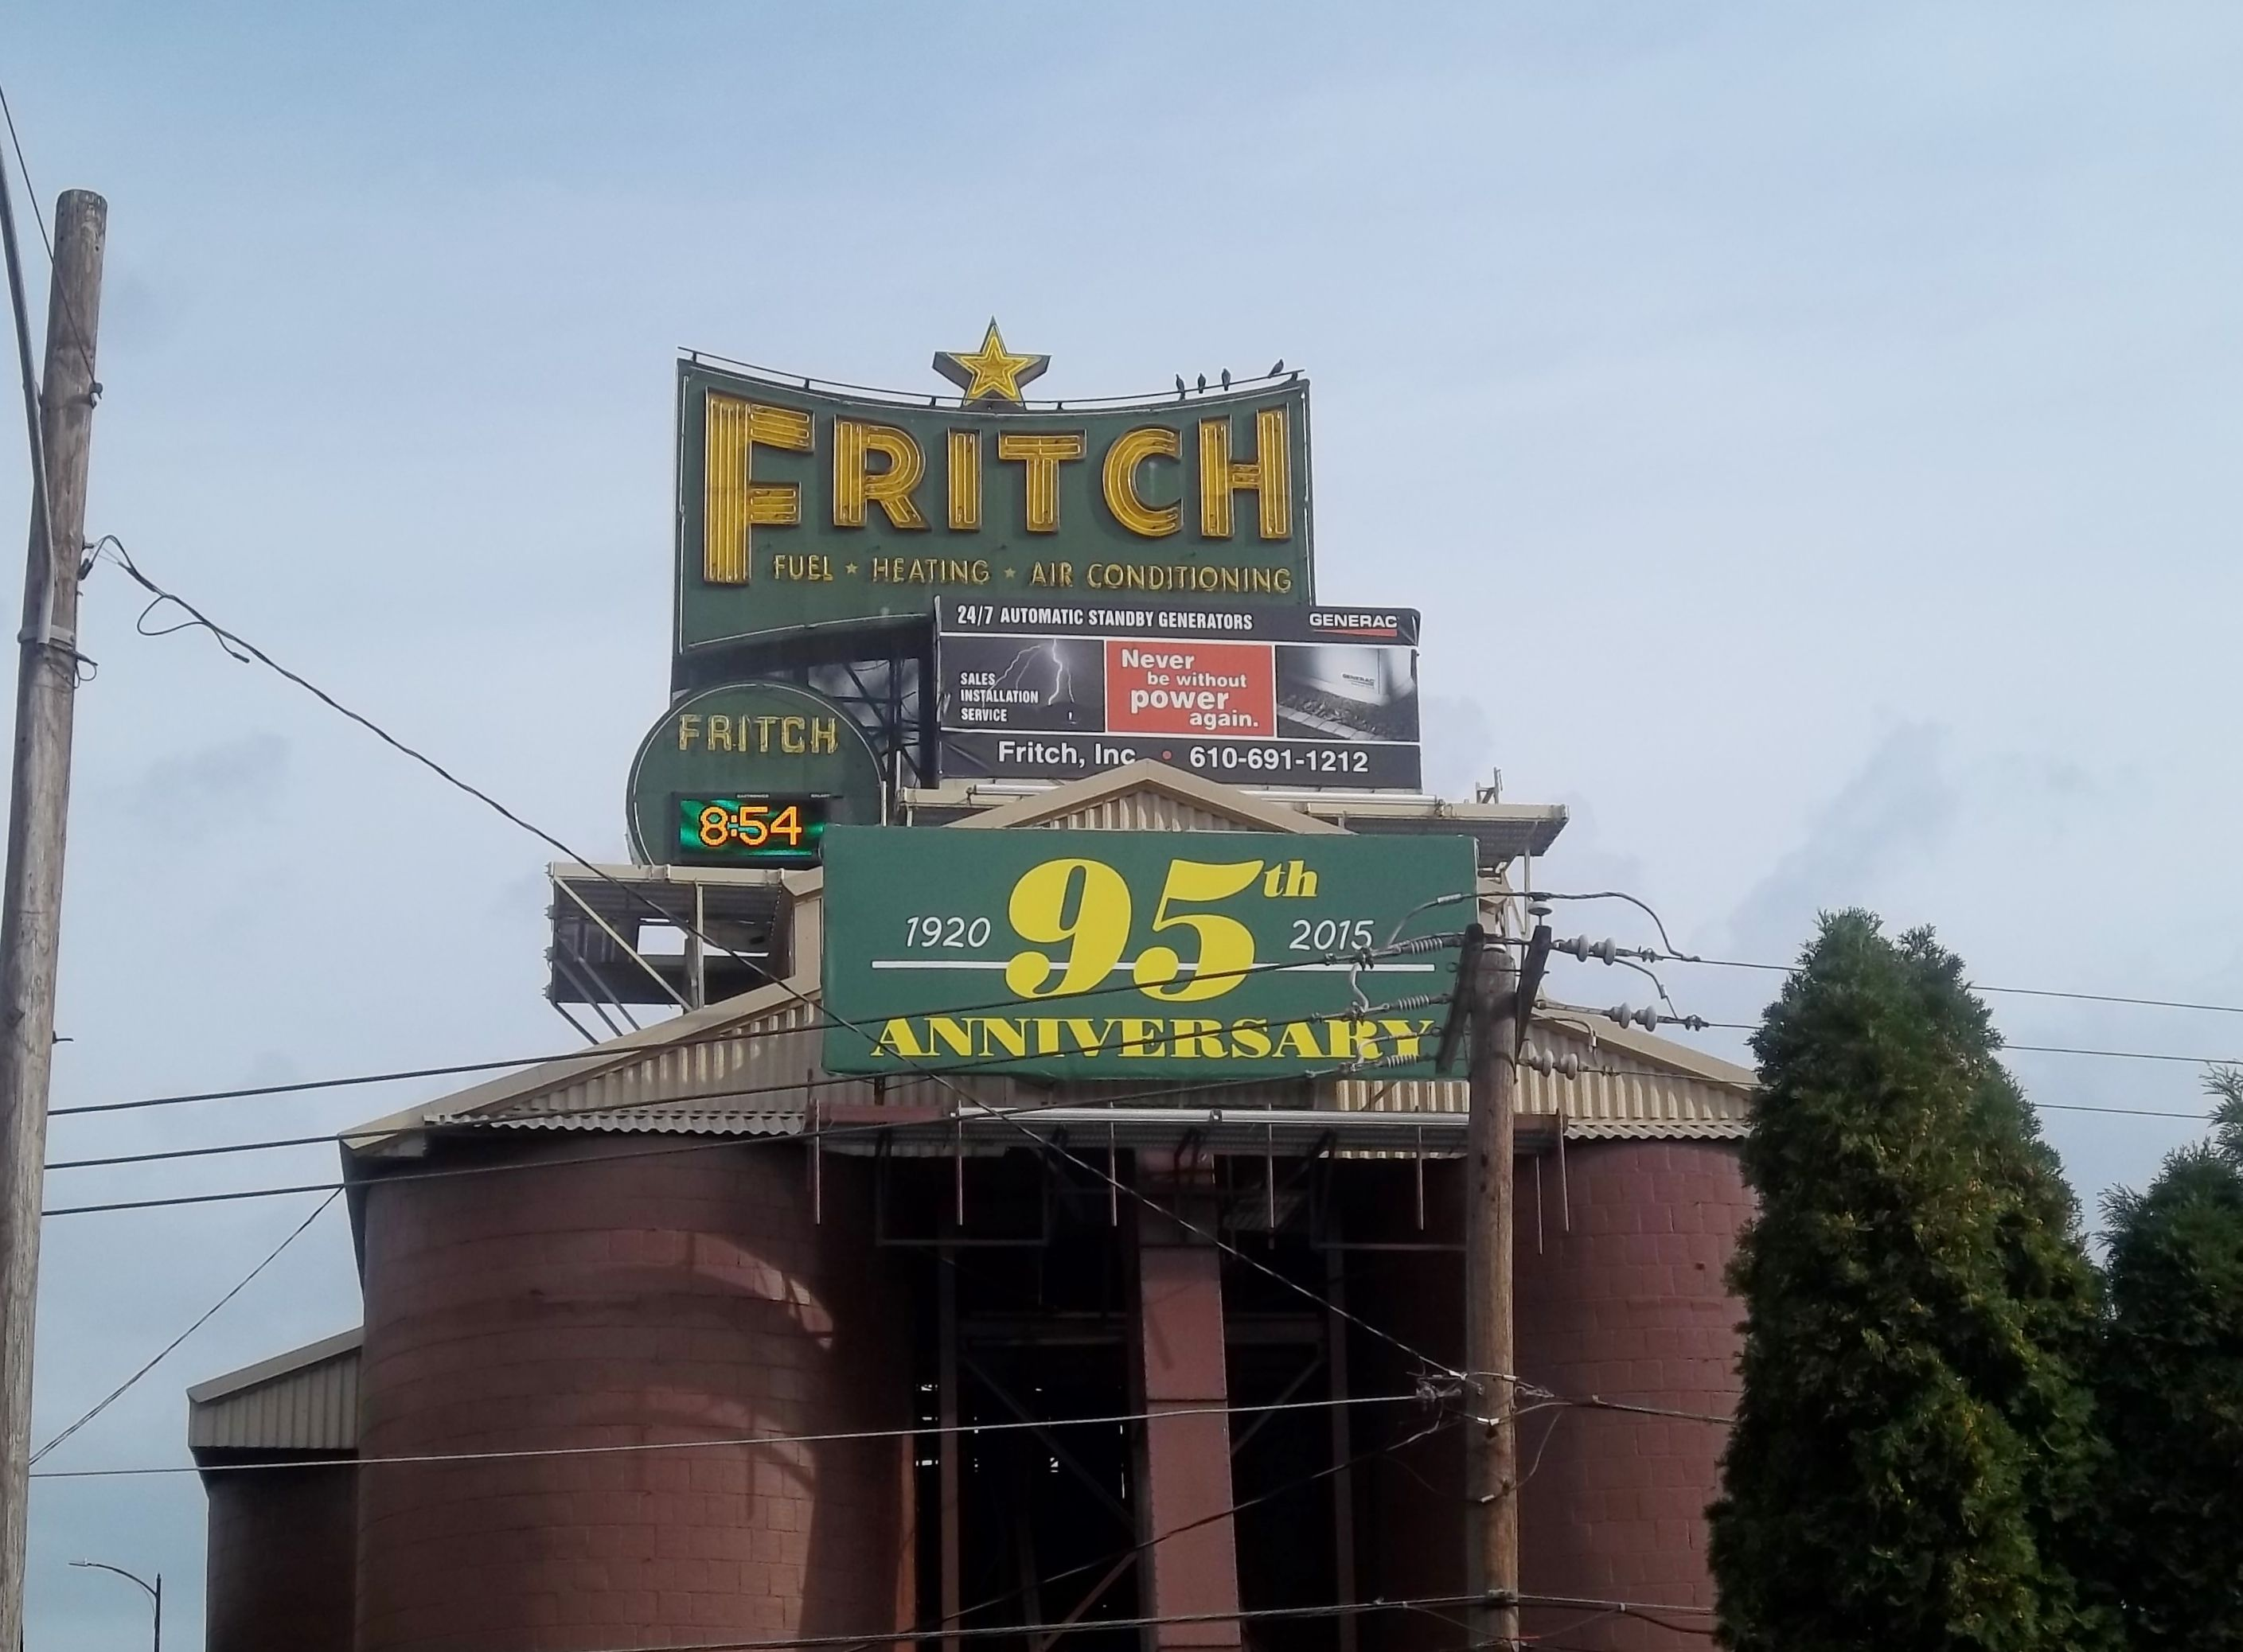 The Iconic Fritch Fuel Time And Temperature Board Next To The Hill